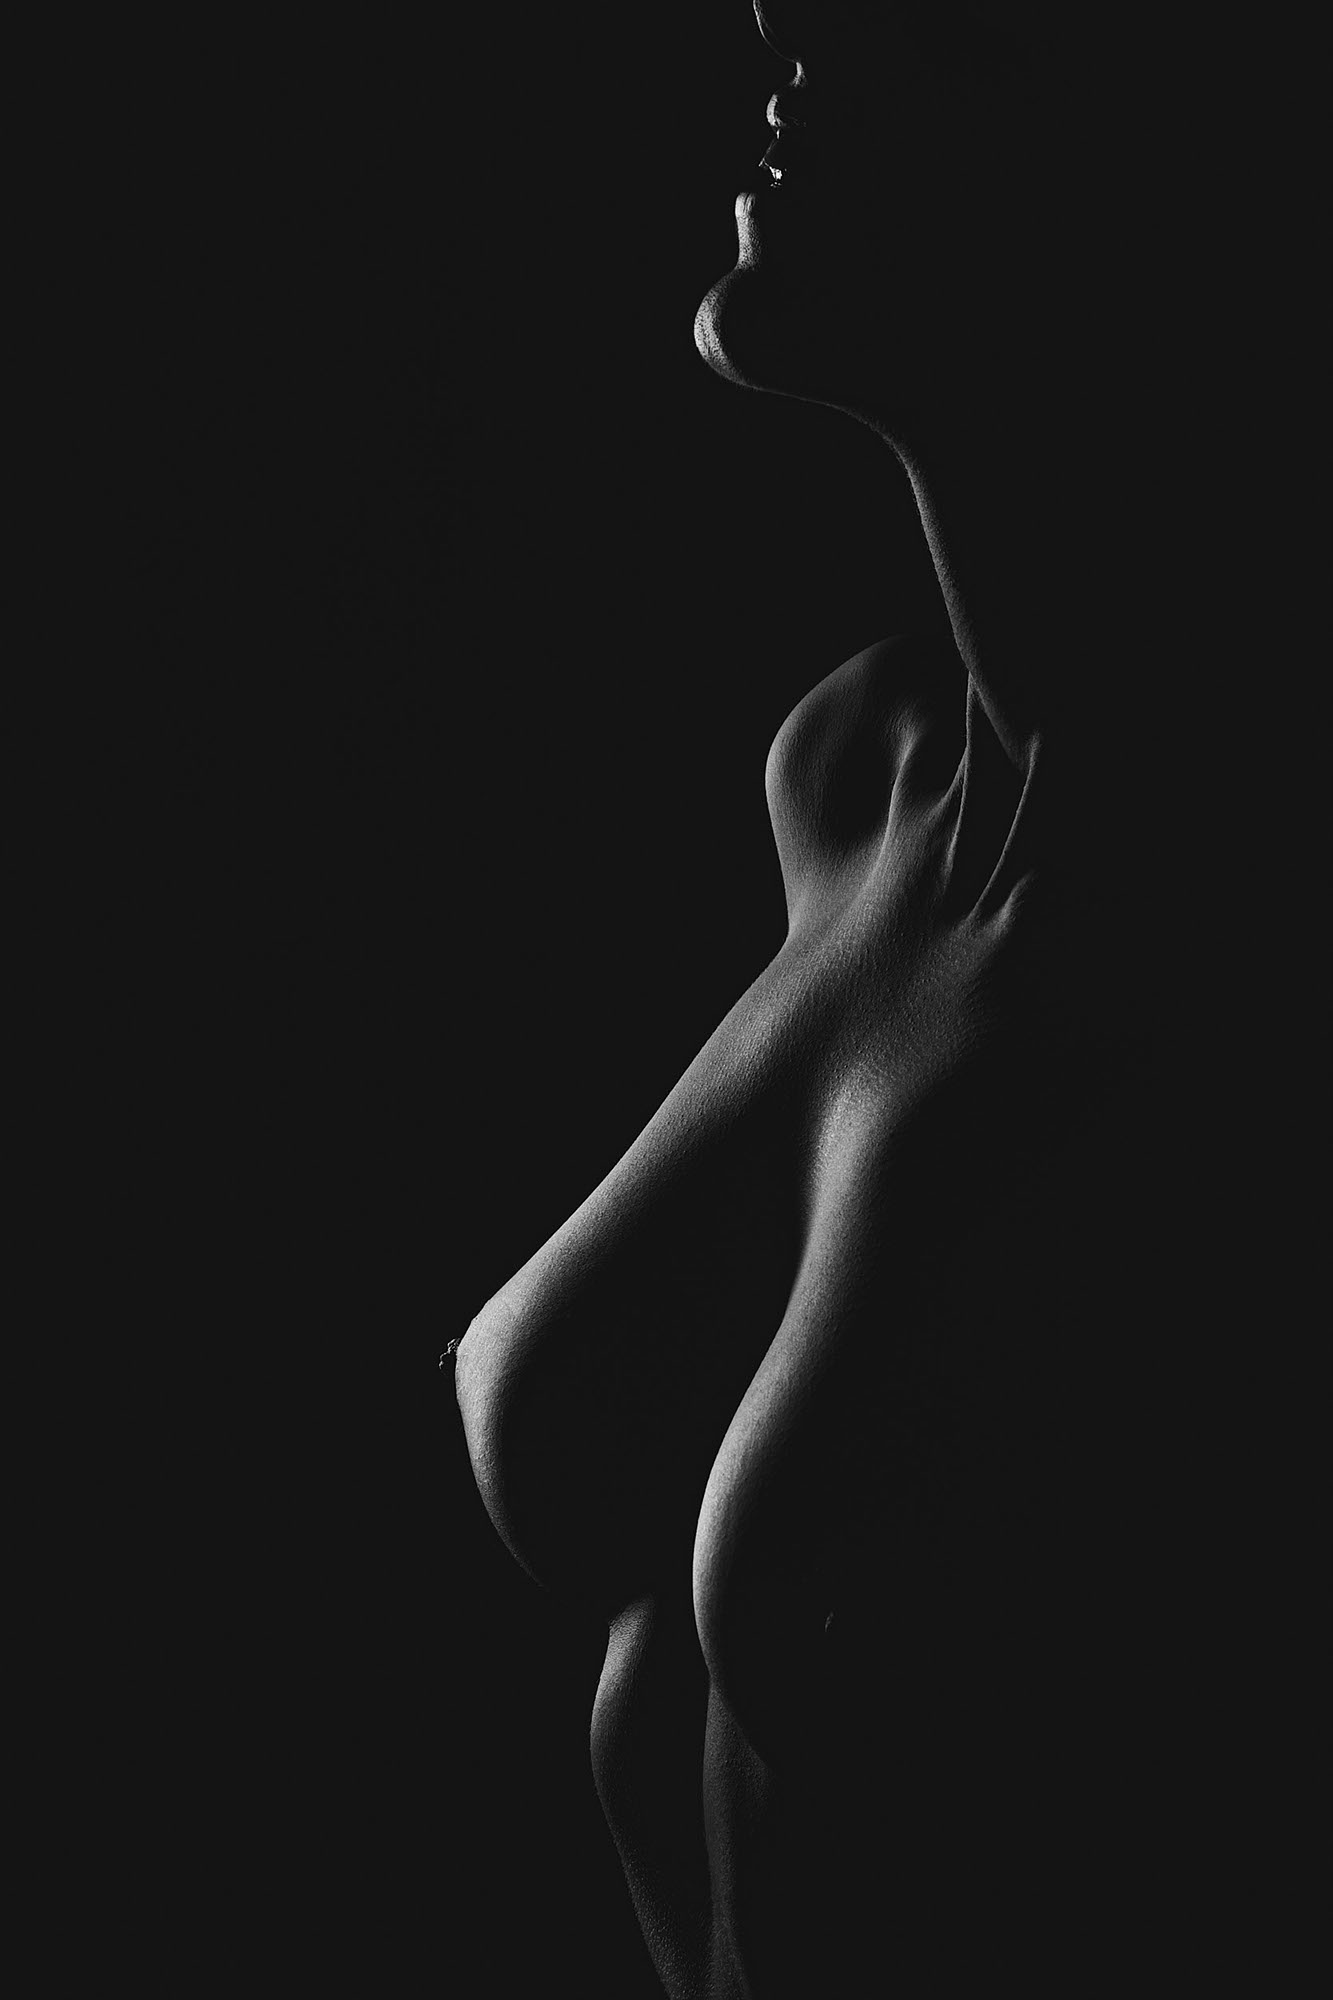 art-nude-black-and-white-silhouette-breast